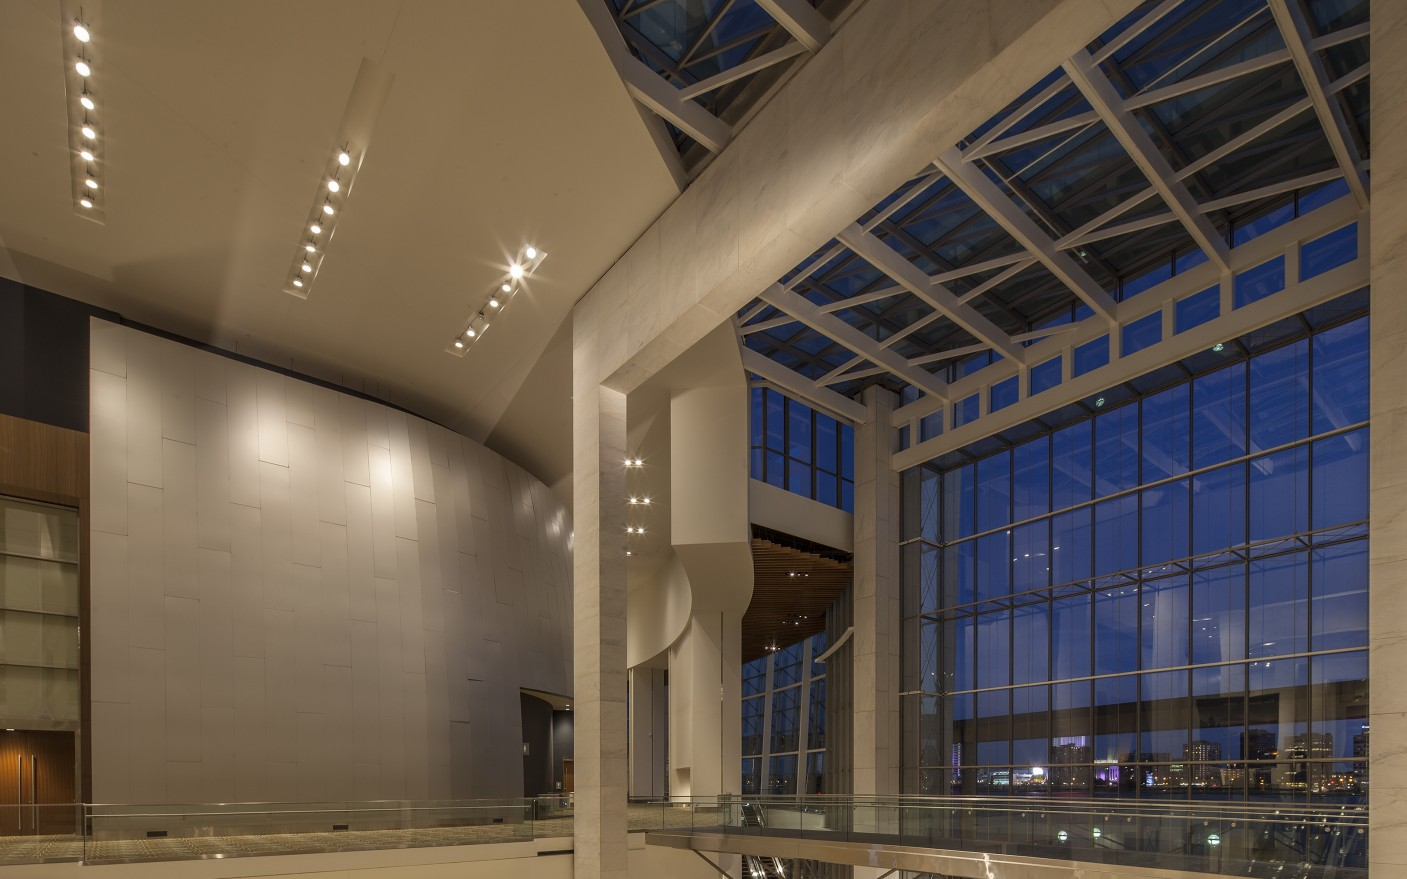 The fixtures are cross-aimed to mimic light coming through the glass atrium during the day.